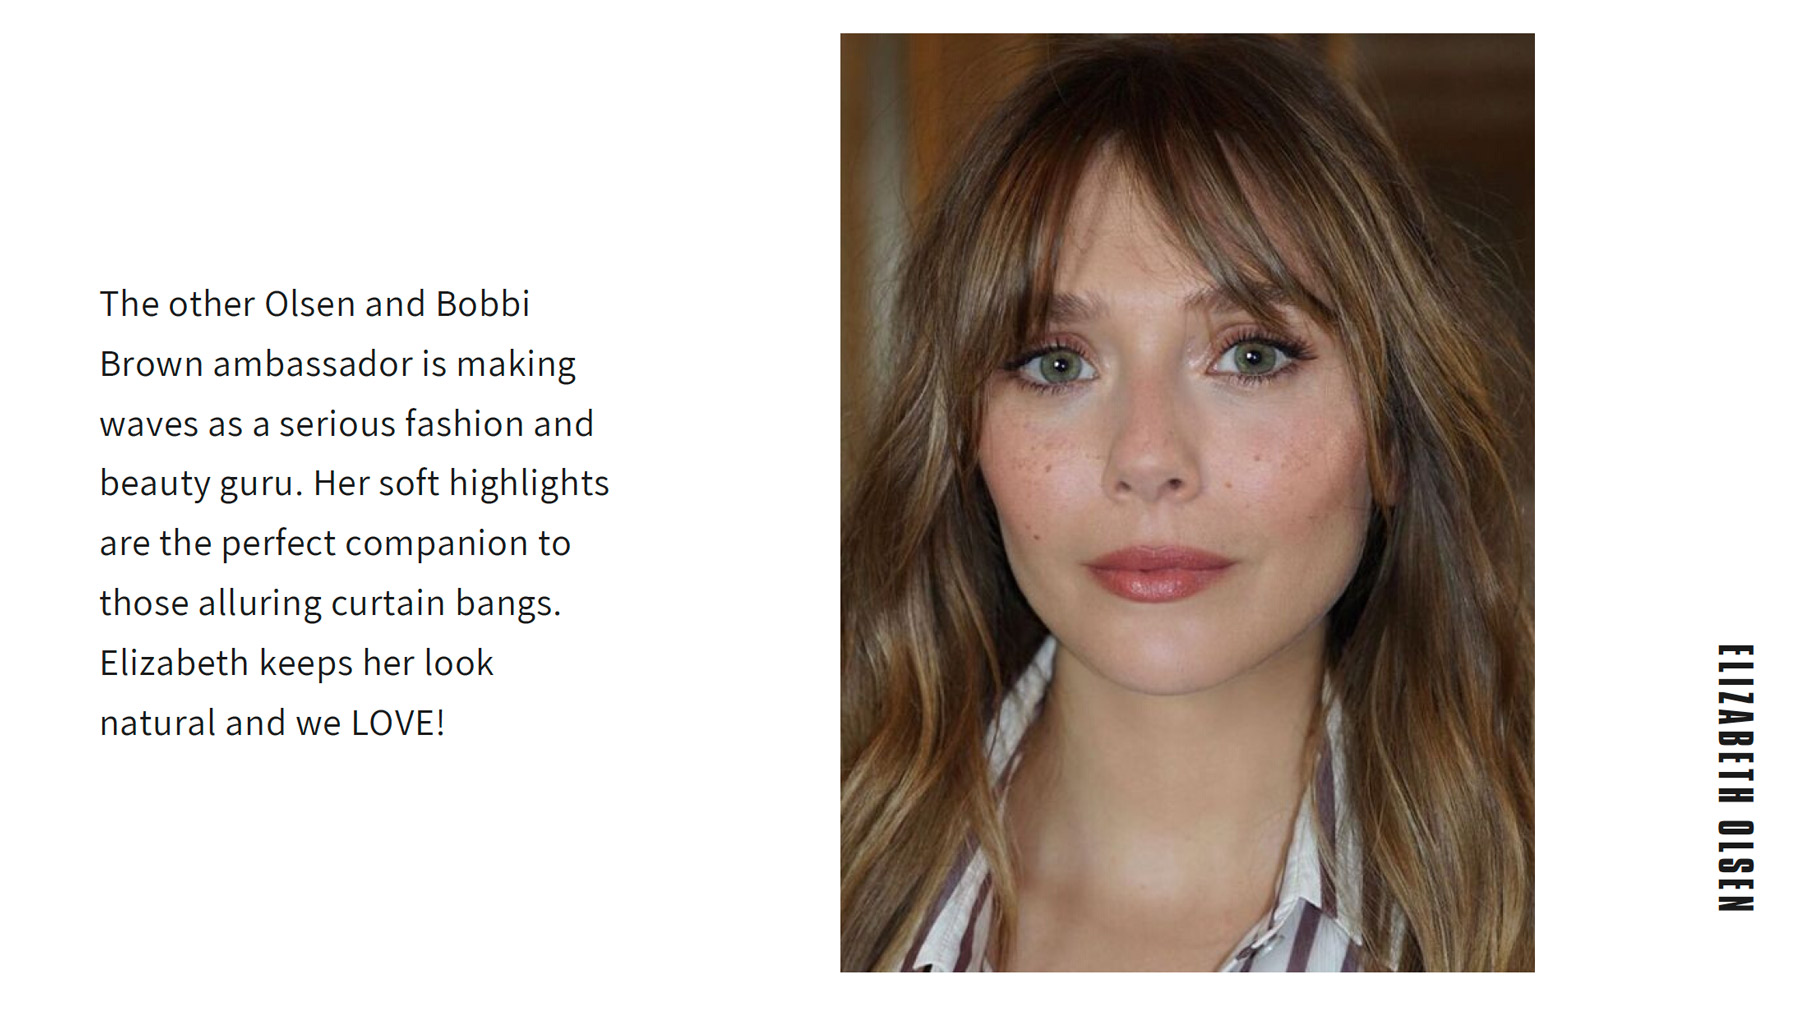 Elizabeth Olsen experiments with curtain bangs and the result was beautiful!